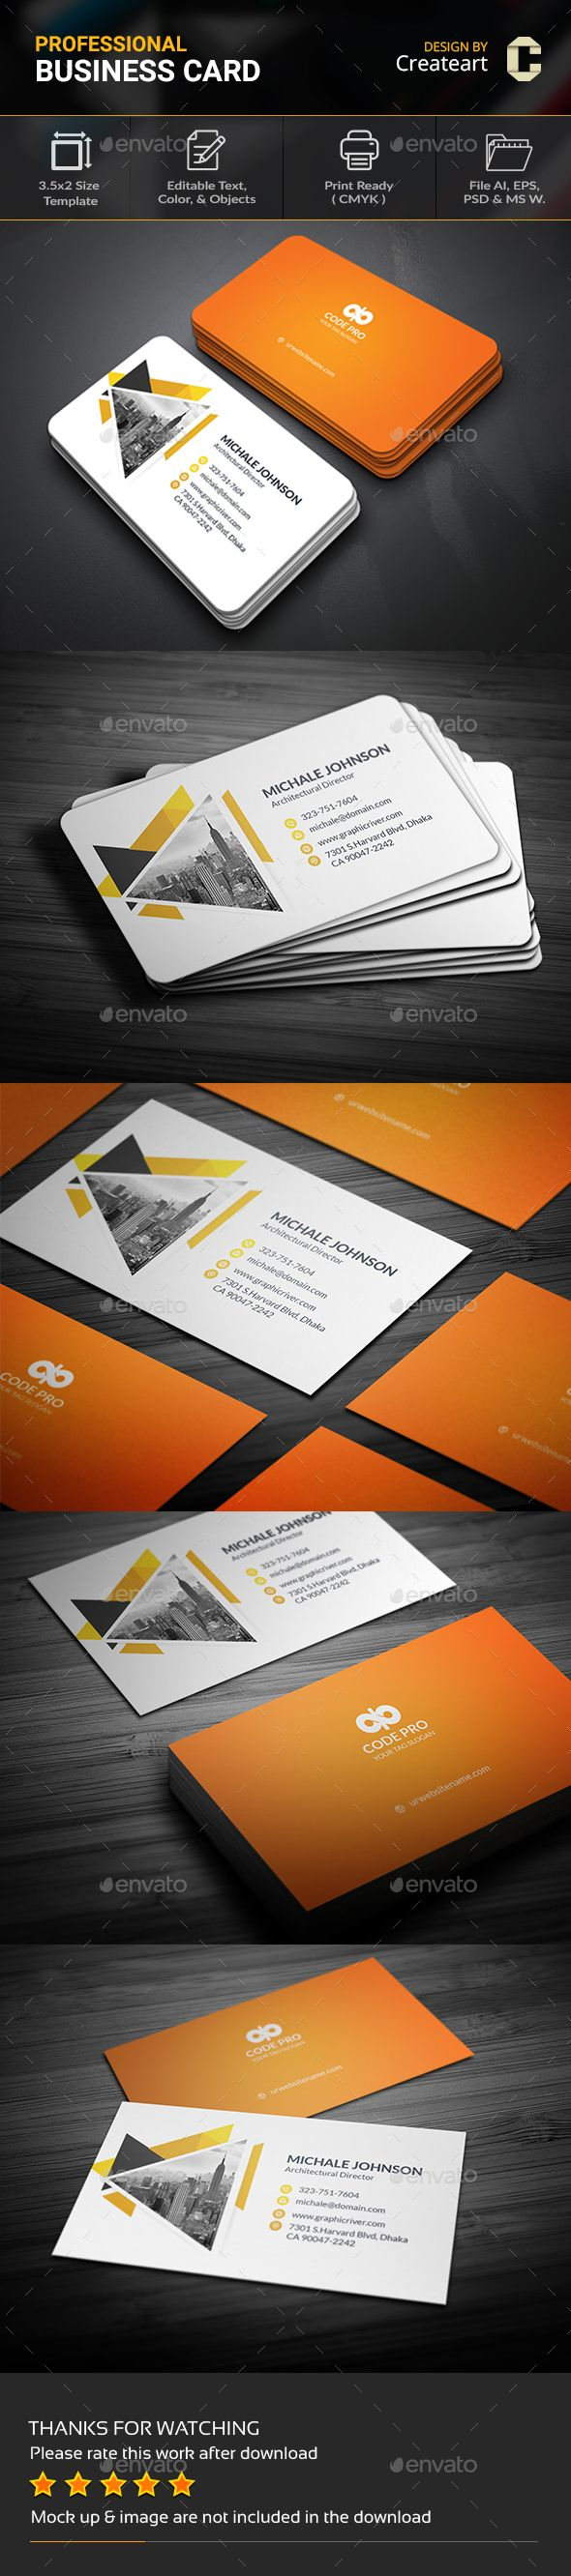 Corporate Business Card — Photoshop PSD #designer #business card • Available here → https://graphicriver.net/item/corporate-business-card/20220889?ref=pxcr